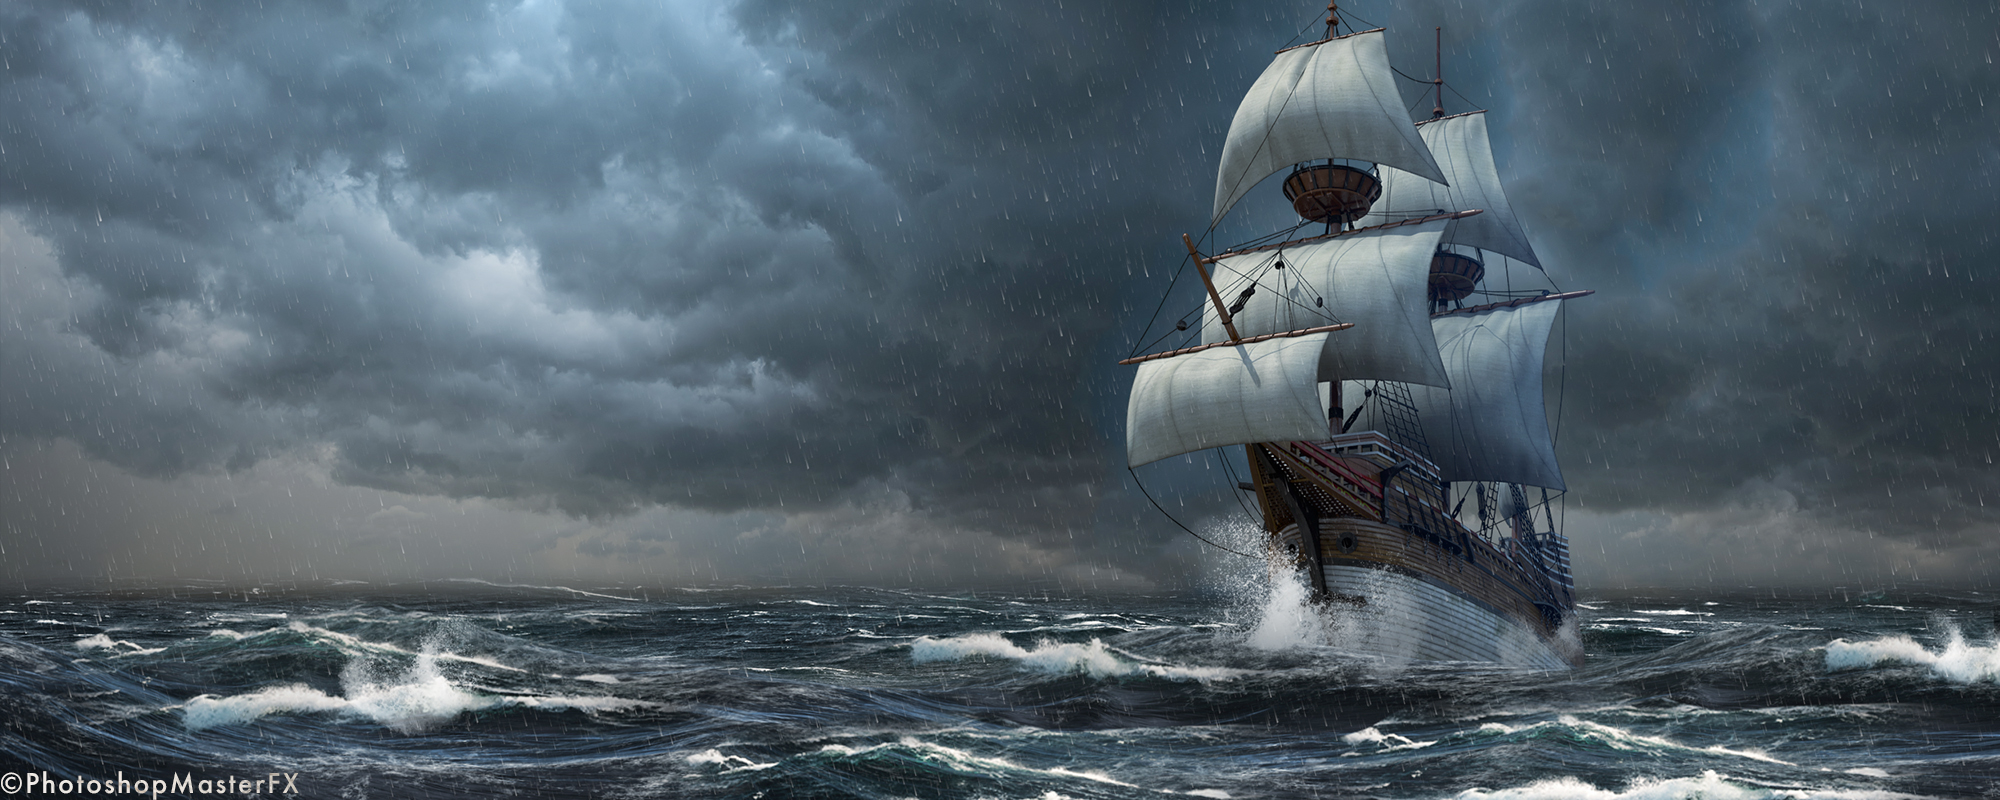 3D Compositing: Ship at Sea